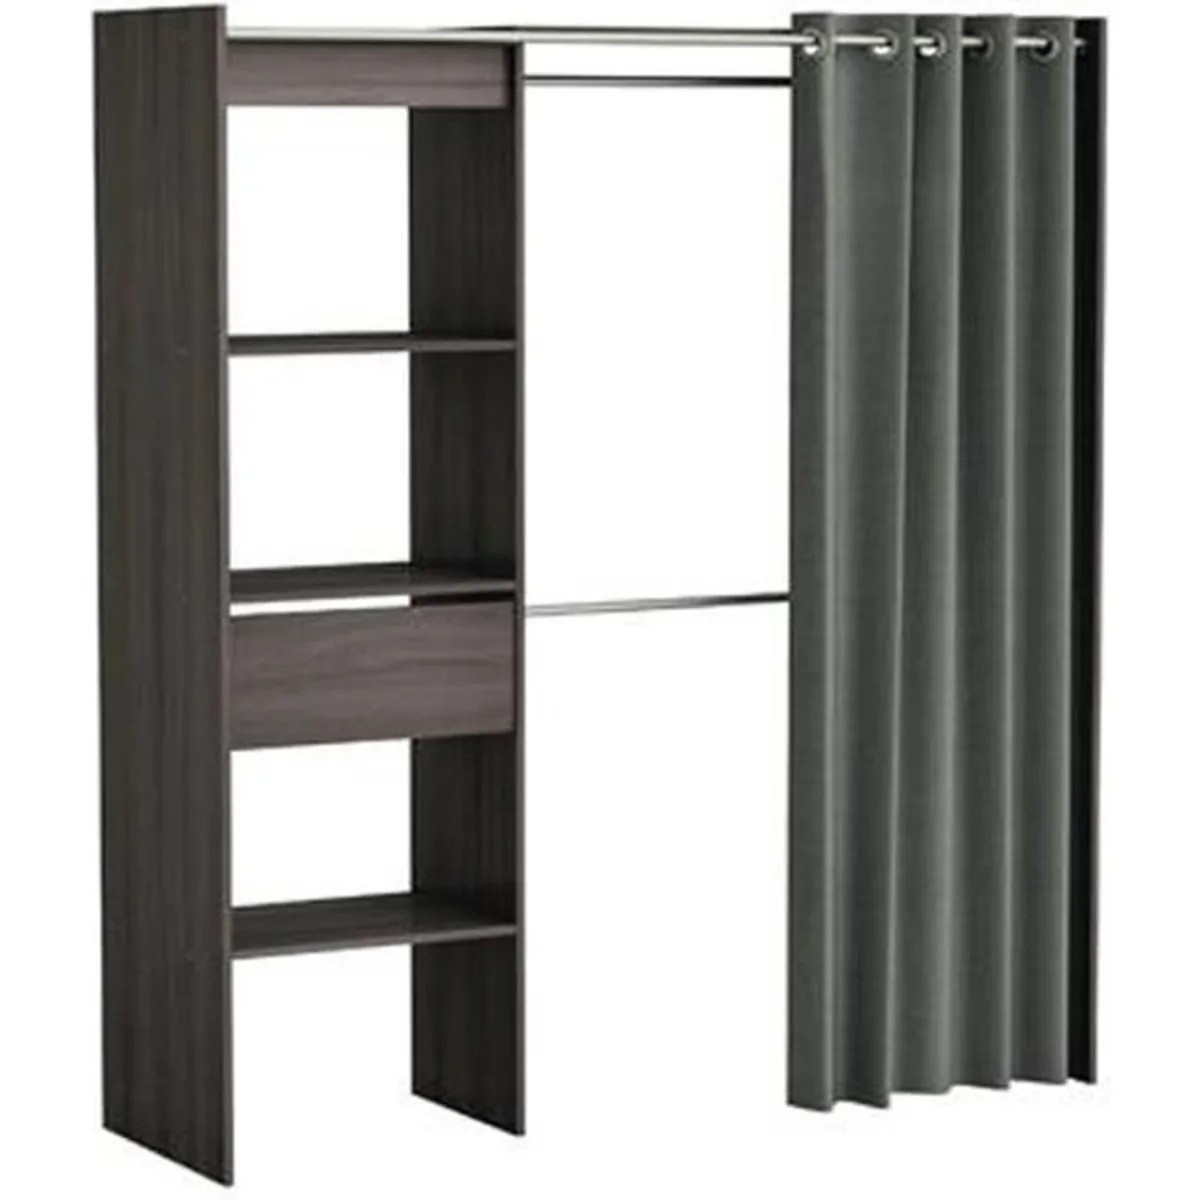 Armoire Dressing Cdiscount Dressing Avec Rideau Achat Vente Dressing Avec Rideau